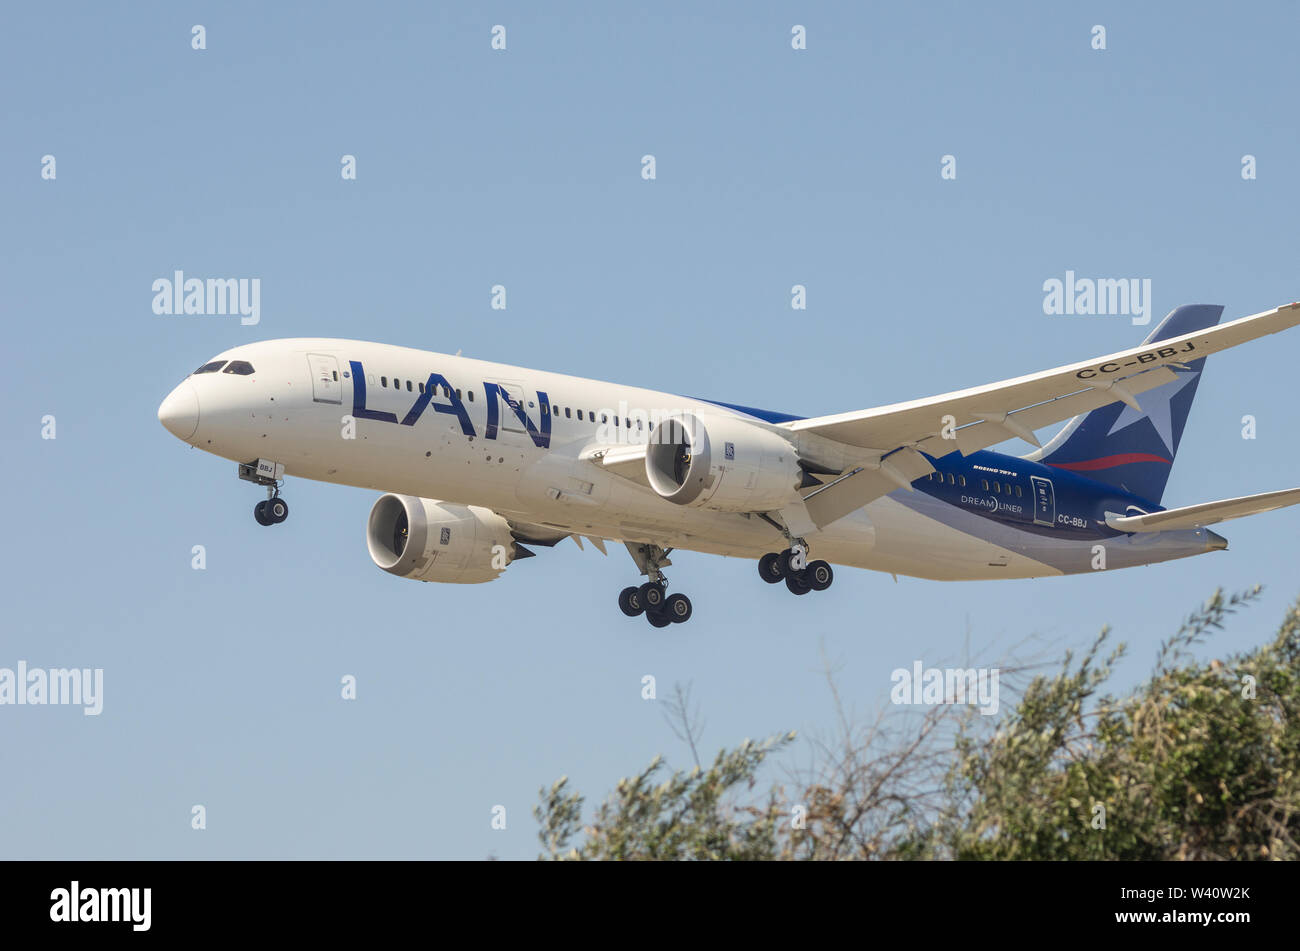 Lan Airlines Stock Photos & Lan Airlines Stock Images - Alamy